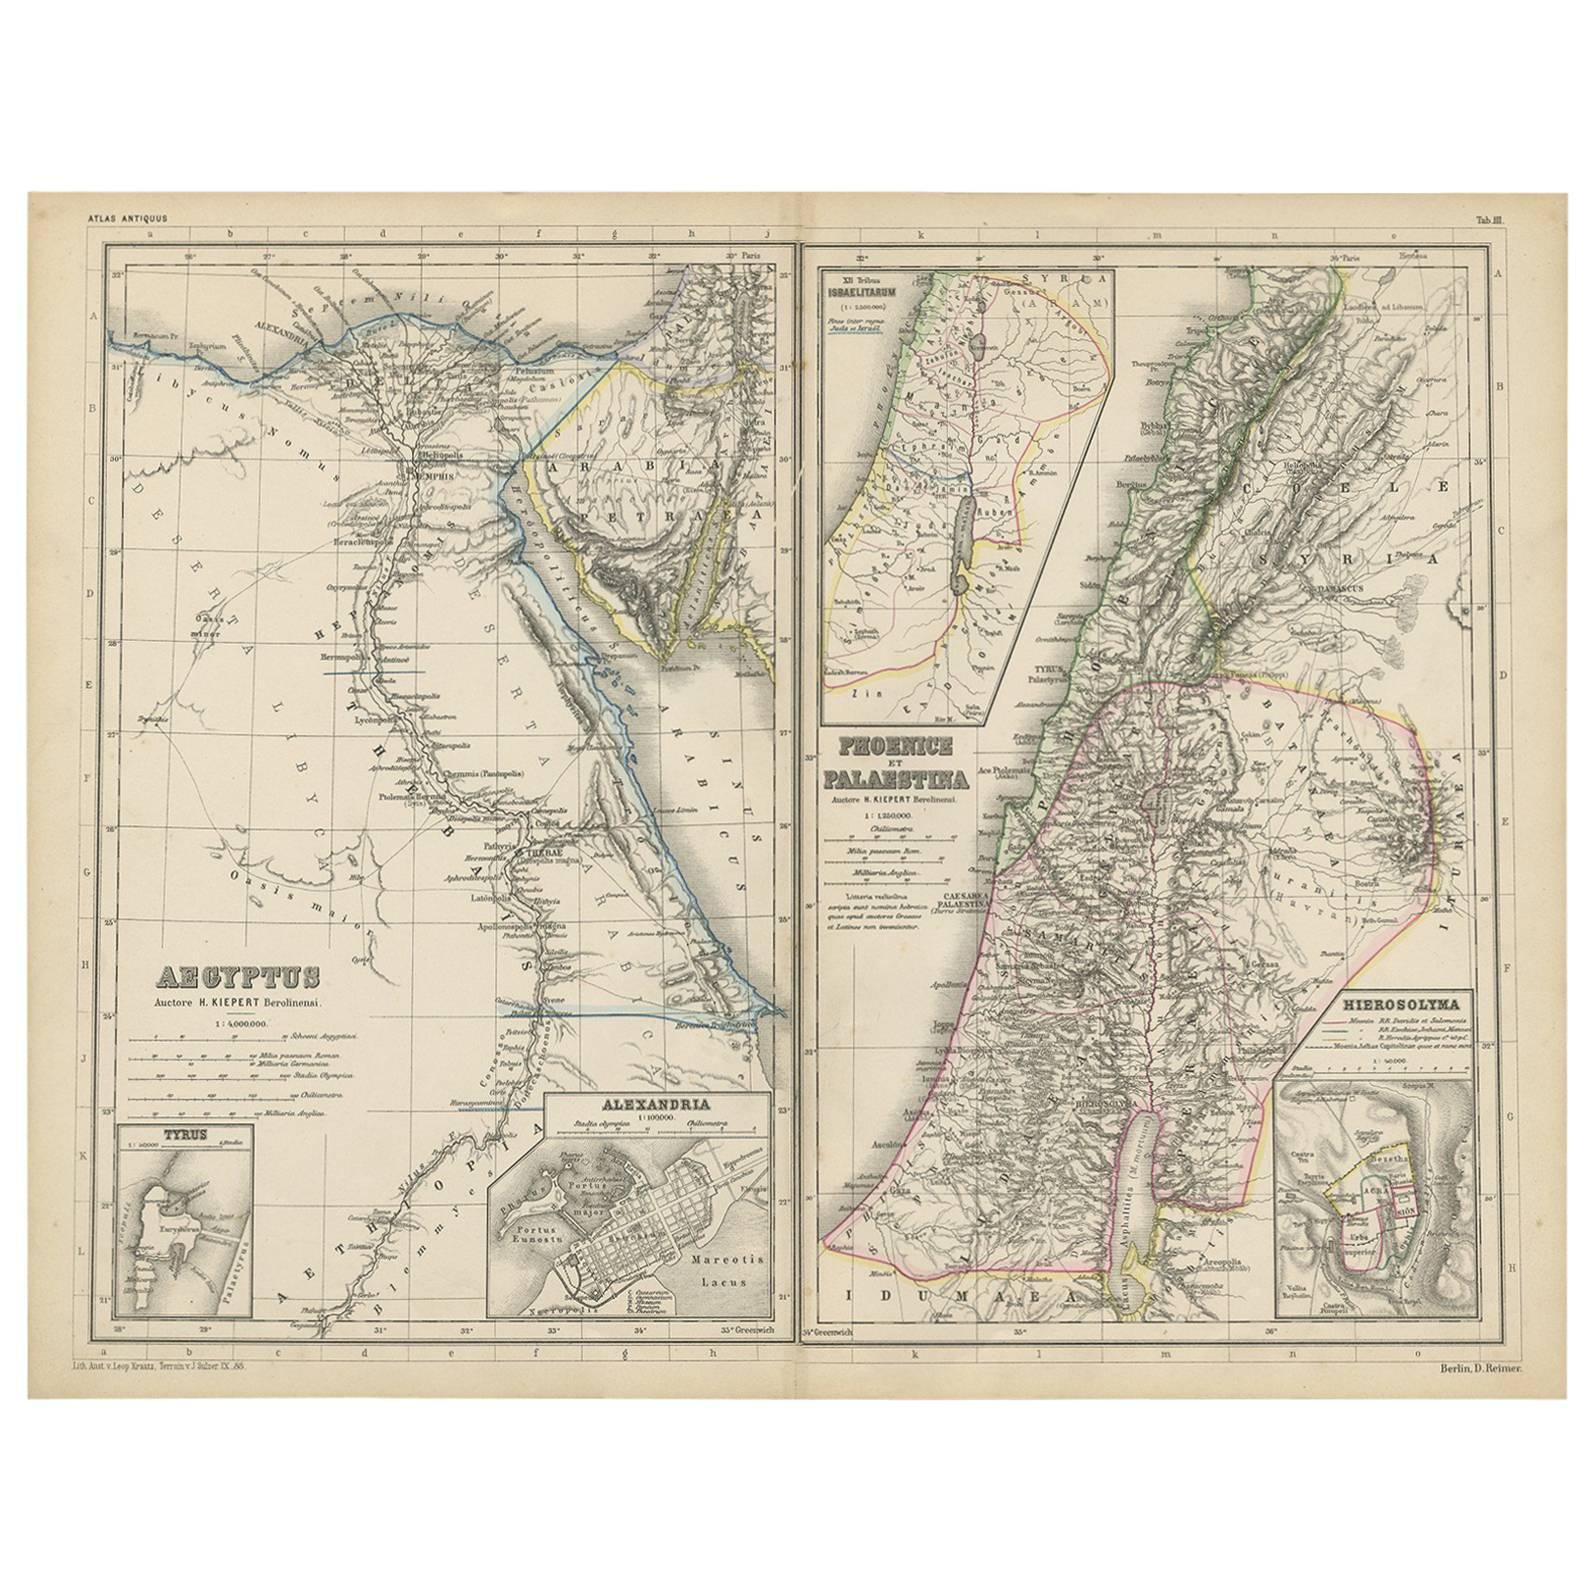 Antique Map of Egypt and Palestina by H. Kiepert 'circa 1870'